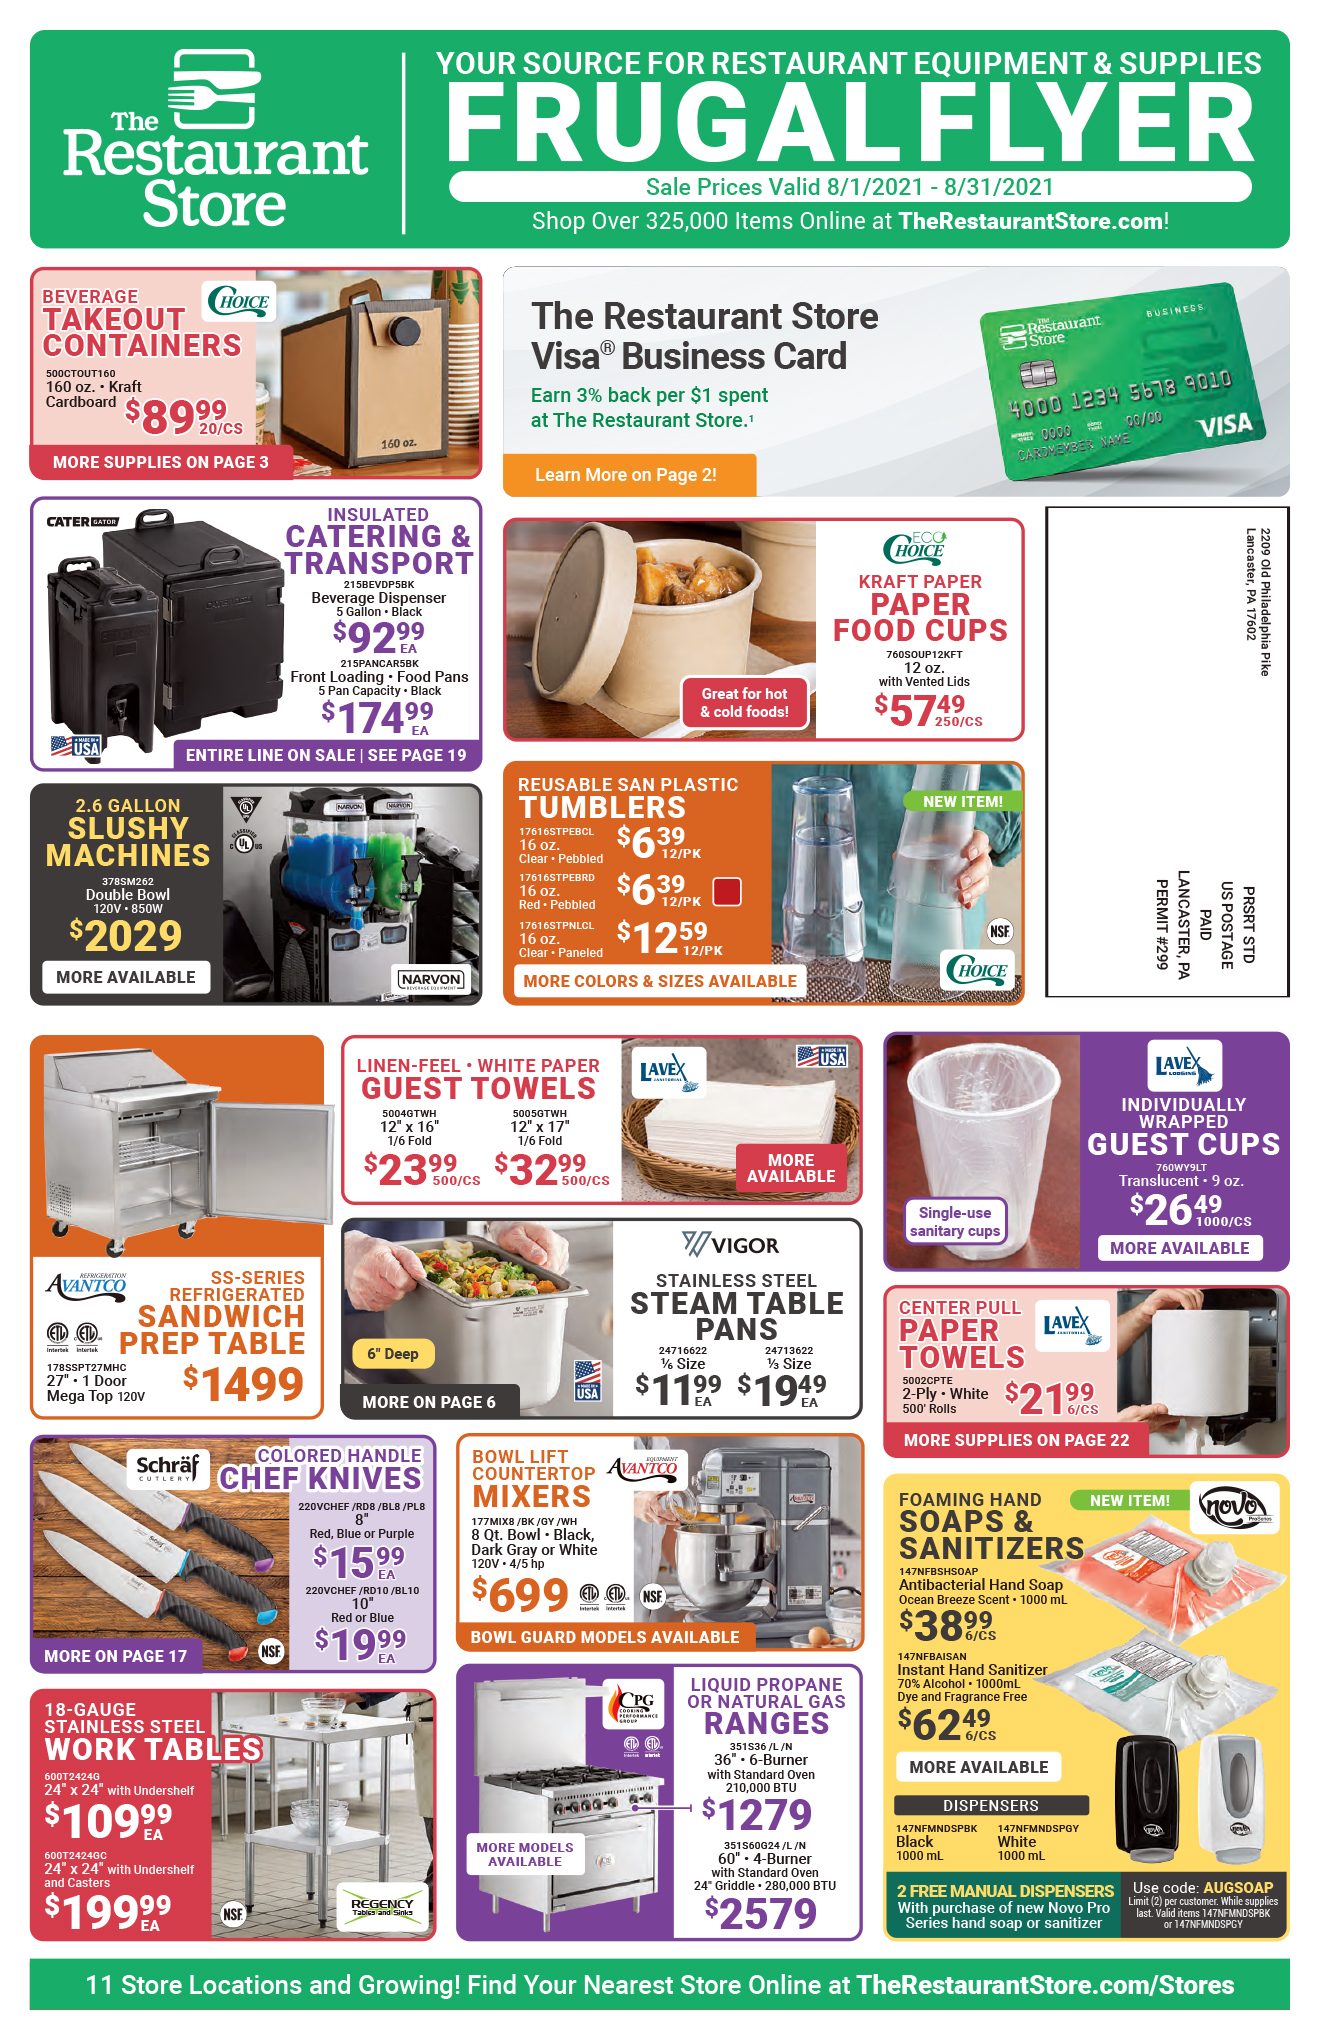 August 2021 In-Store Frugal Flyer